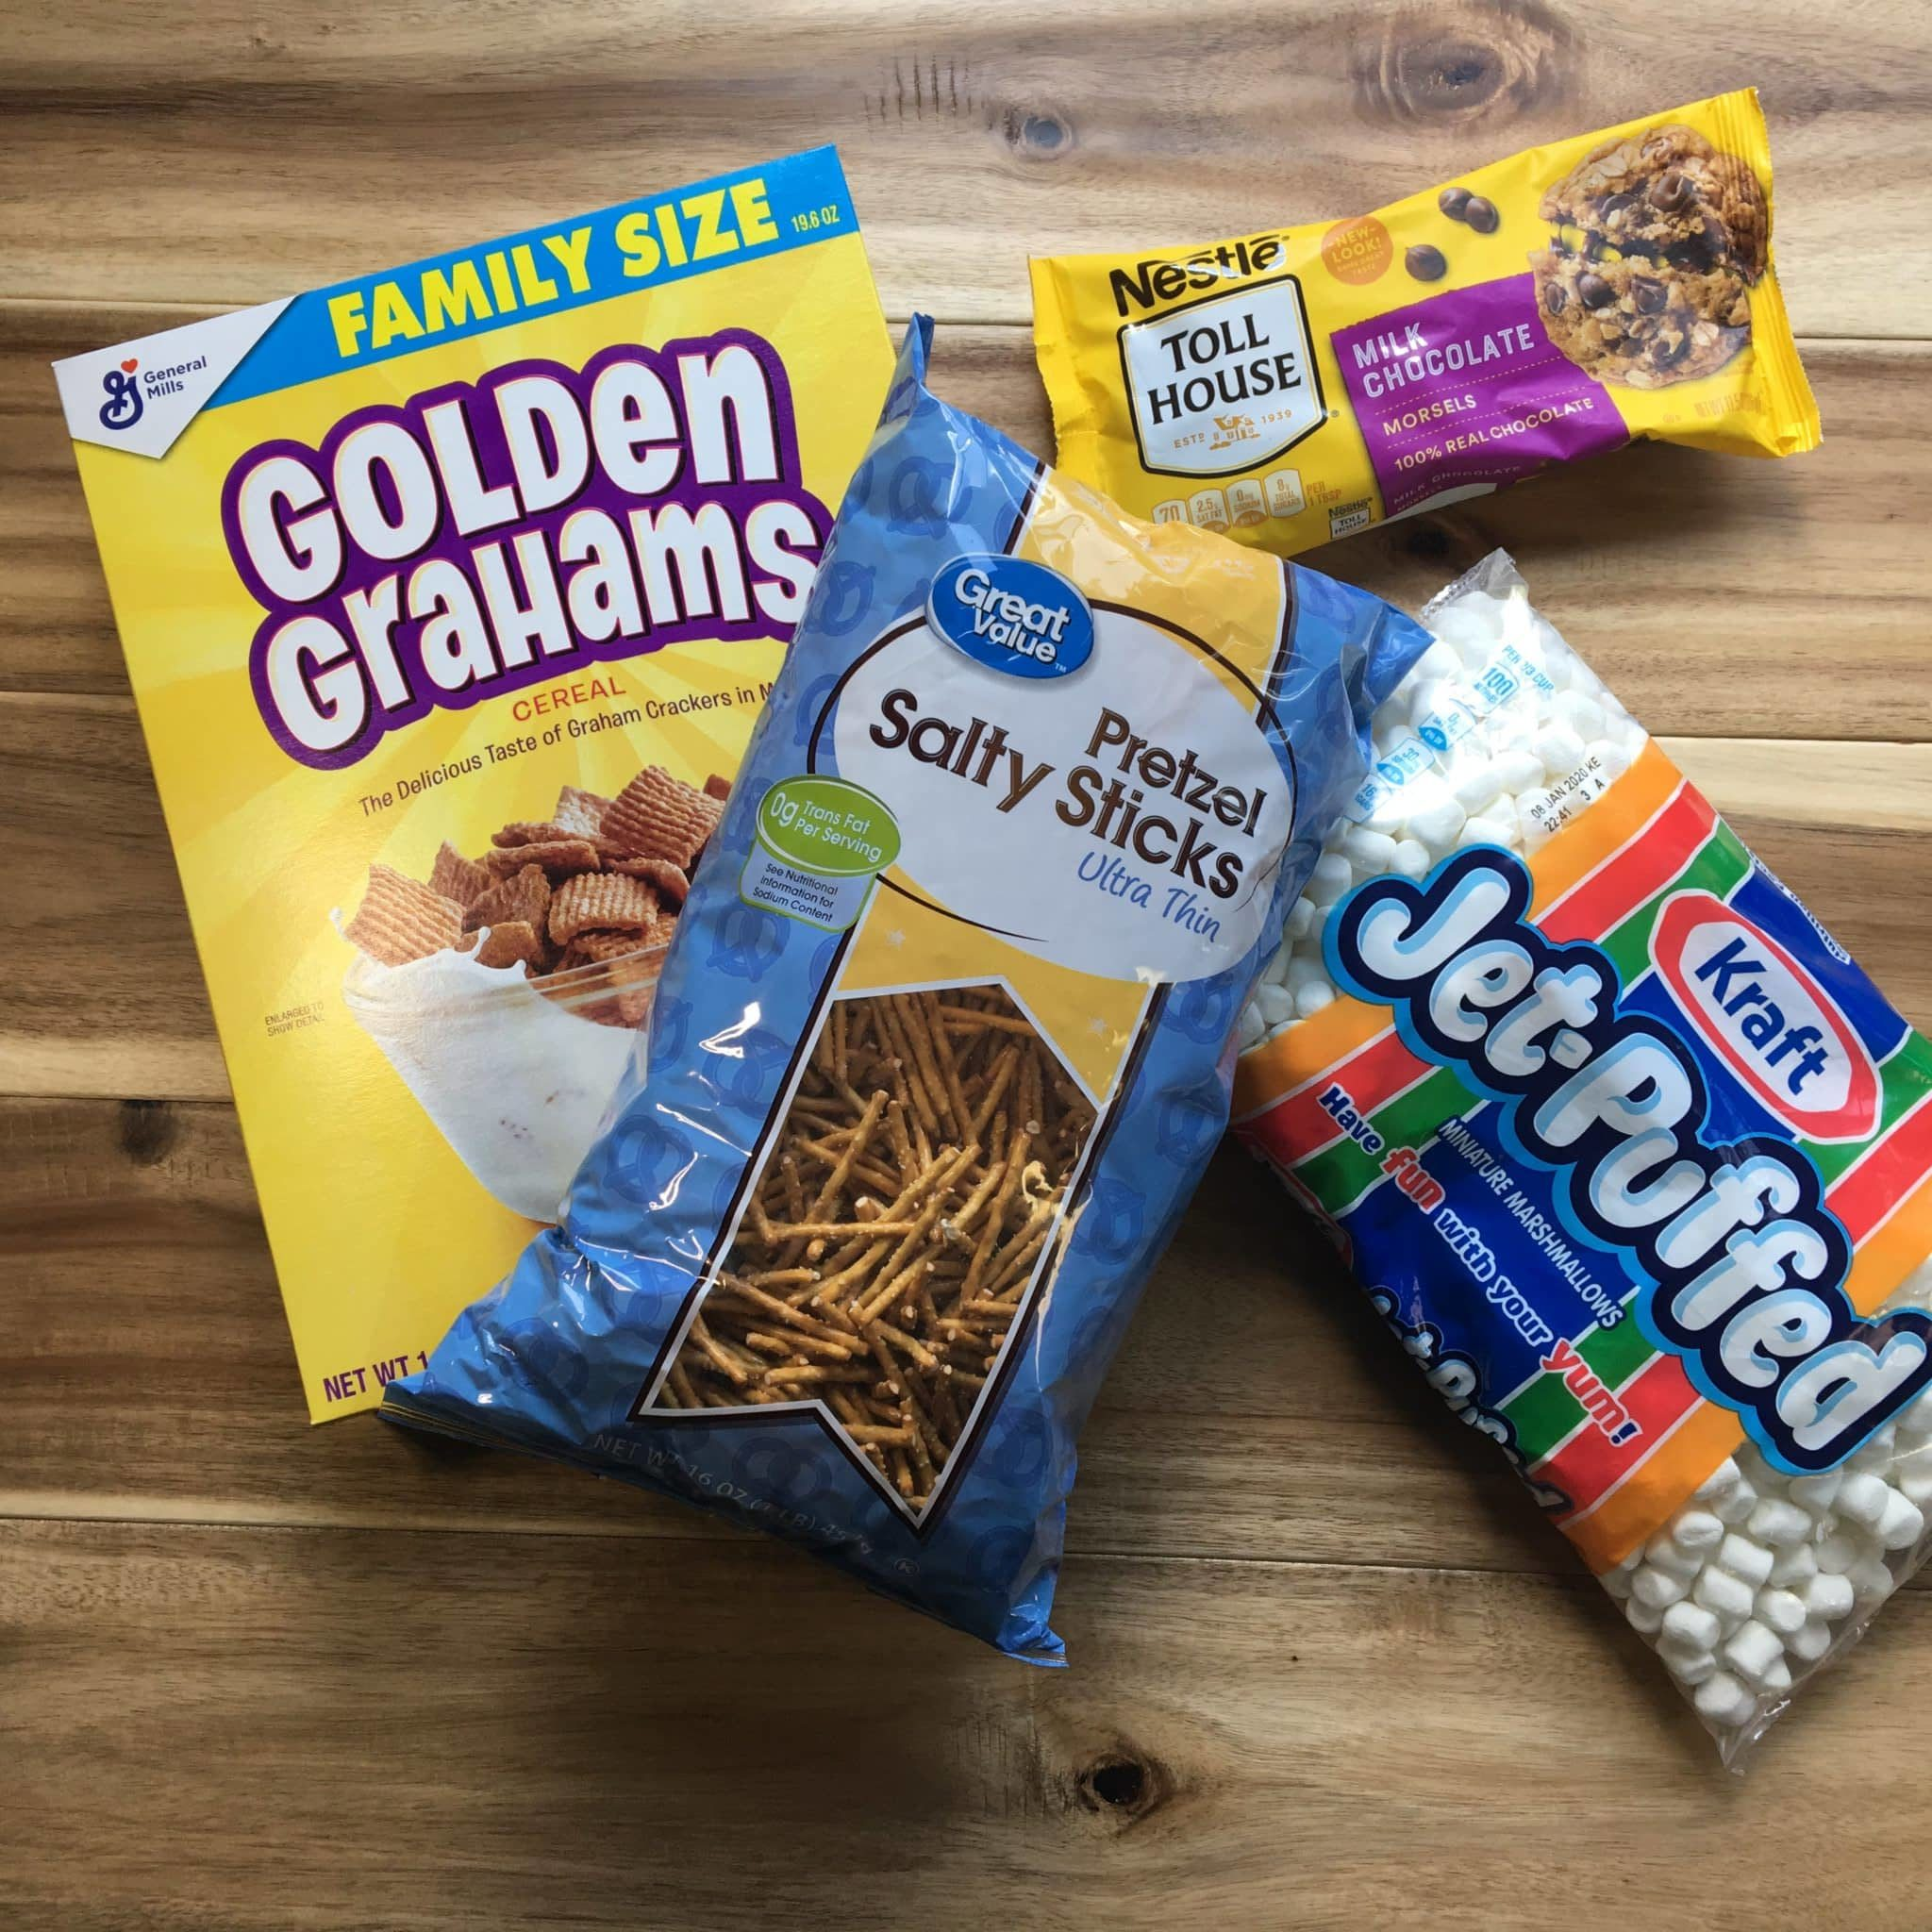 4 ingredient smore snack mix with golden grahams, pretzel, marshmallows and chocolate chips.